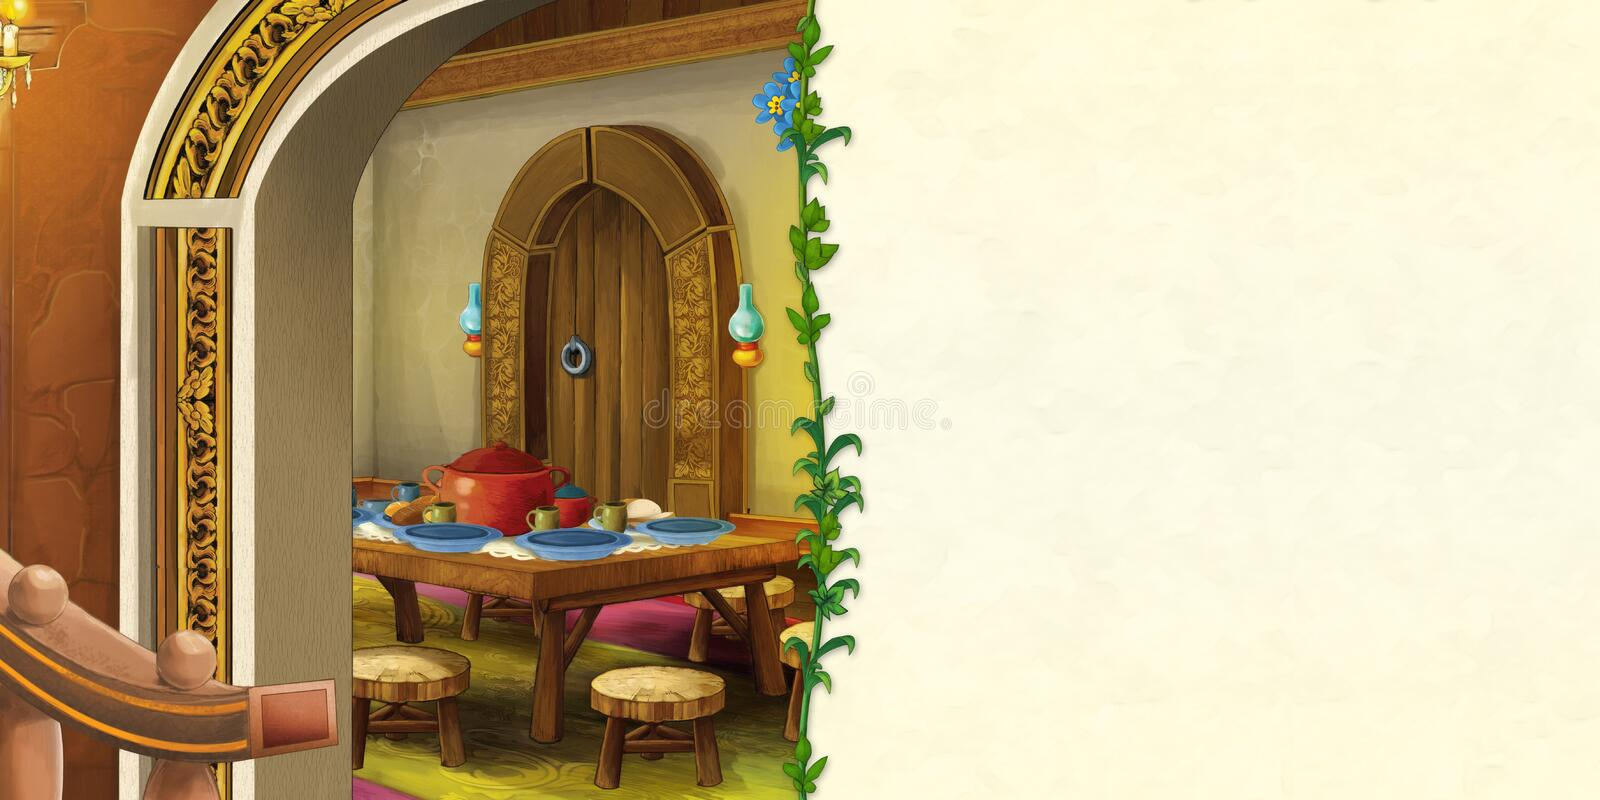 Cartoon scene with old traditional kitchen - with frame and space for text royalty free illustration